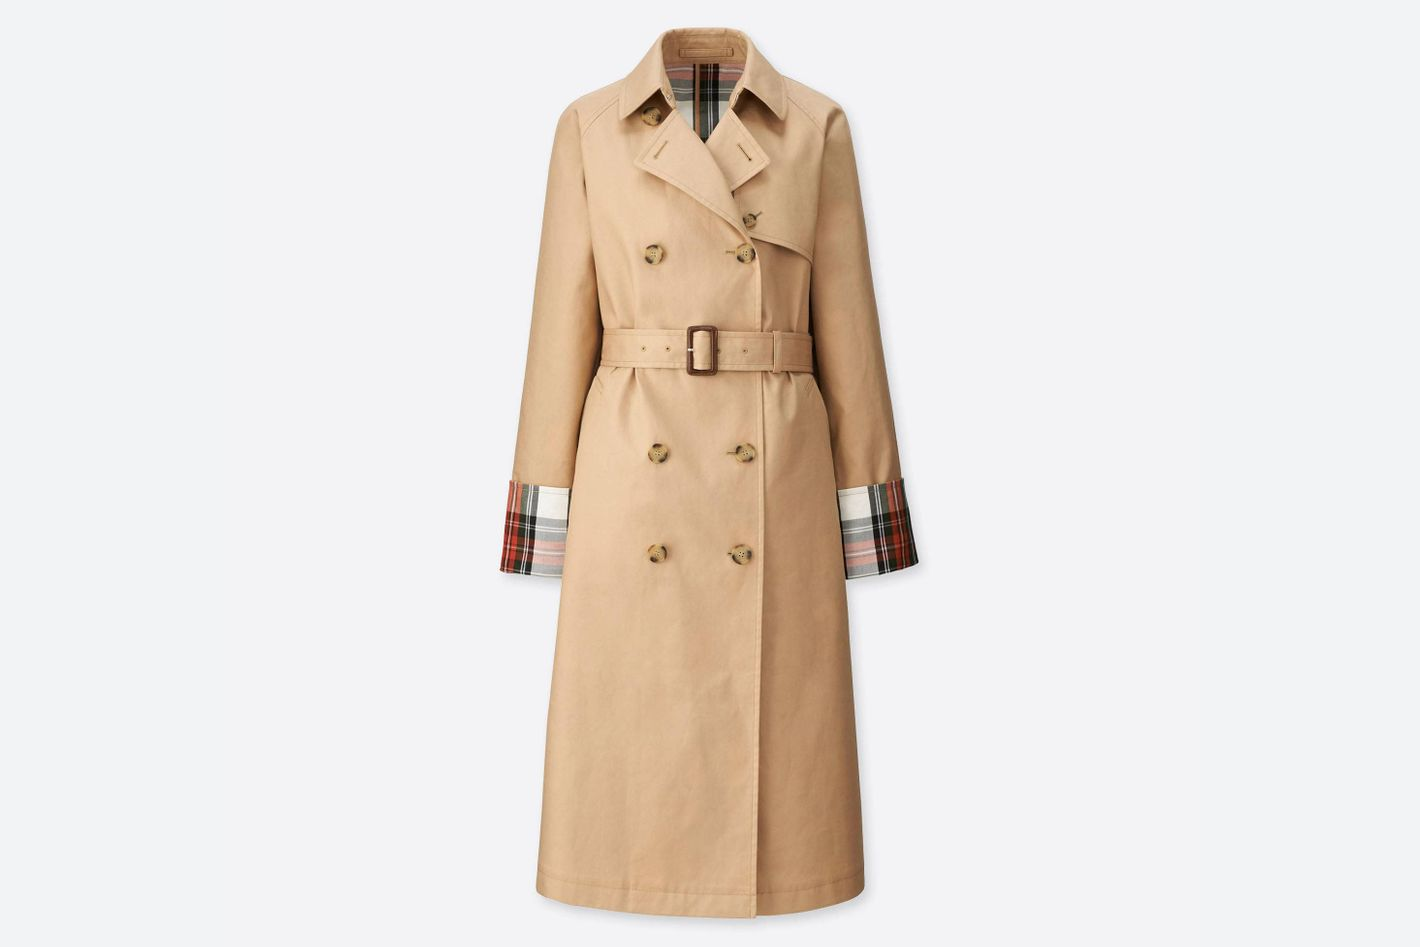 J.W. Anderson x Uniqlo Trench Coat